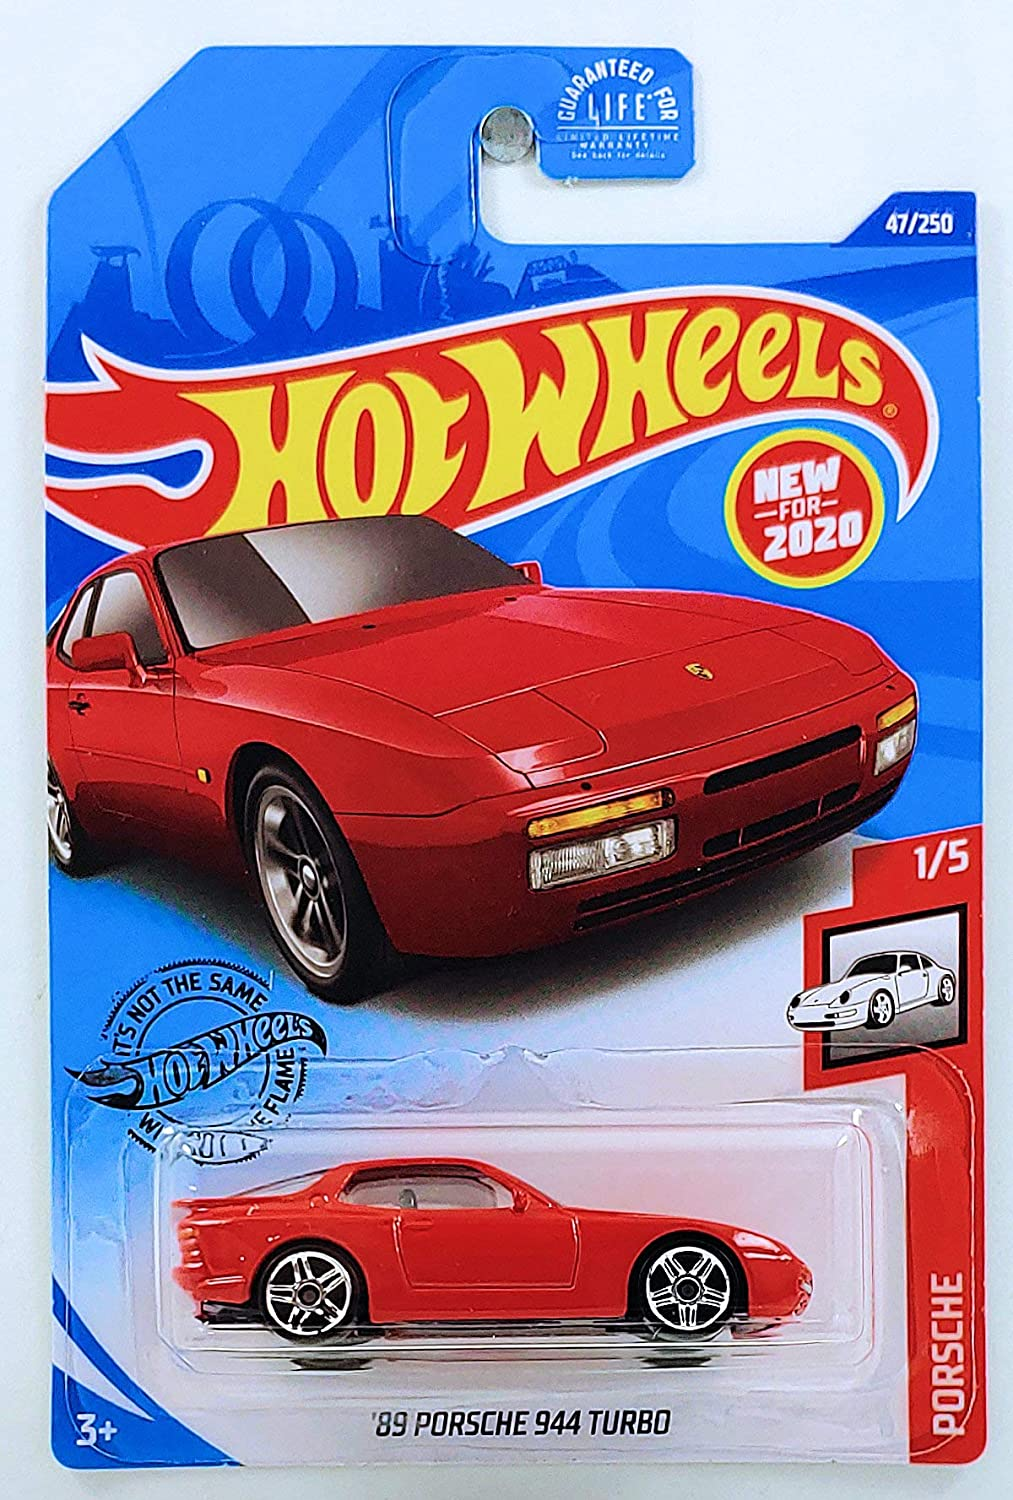 Hot Wheels 2020 Porsche Series '89 Porsche 944 Turbo 47/250, Red